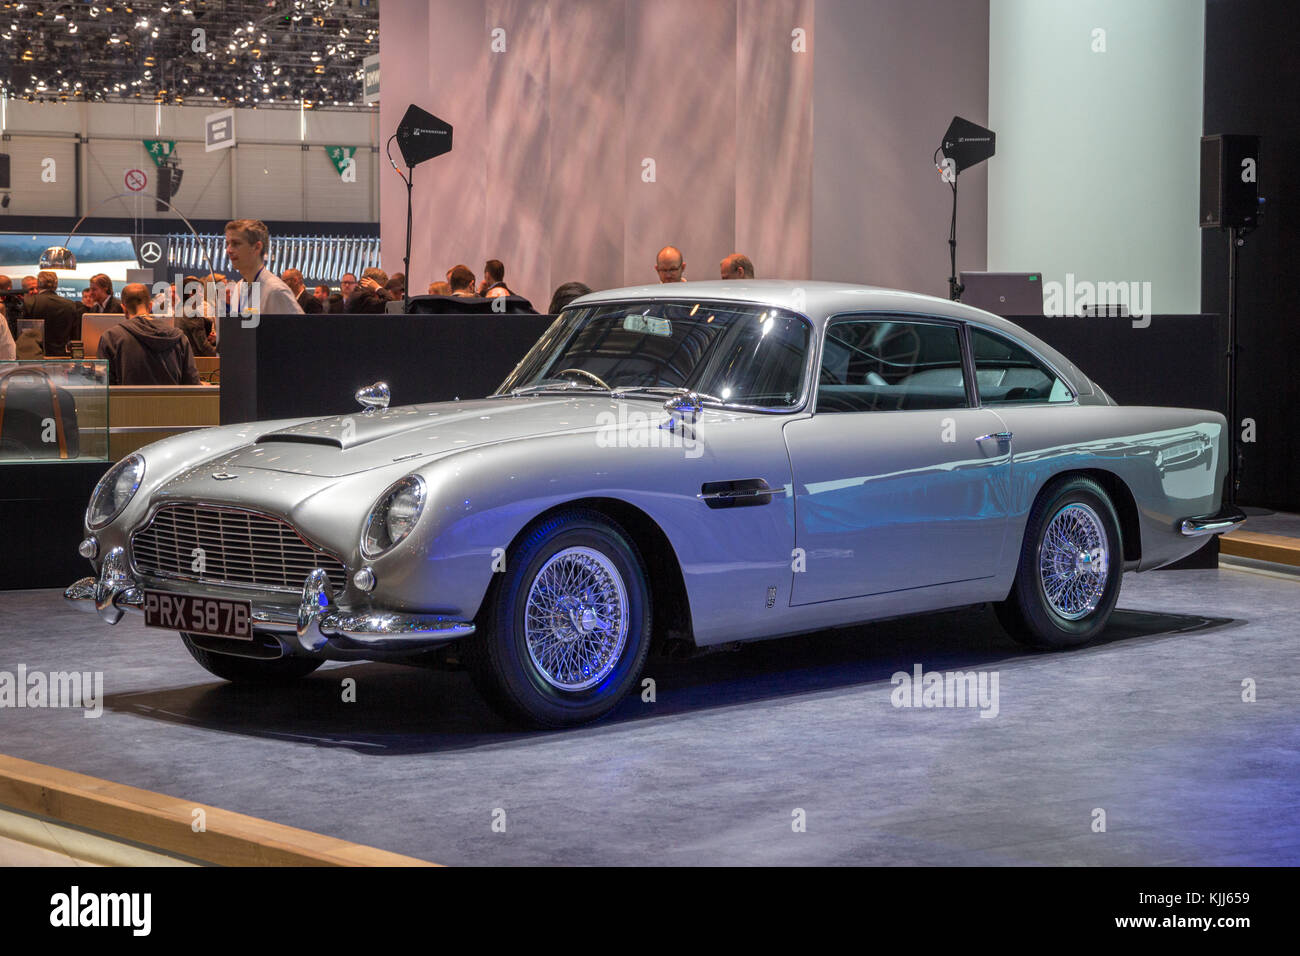 1964 aston martin db5 stock photos 1964 aston martin db5 stock images alamy. Black Bedroom Furniture Sets. Home Design Ideas